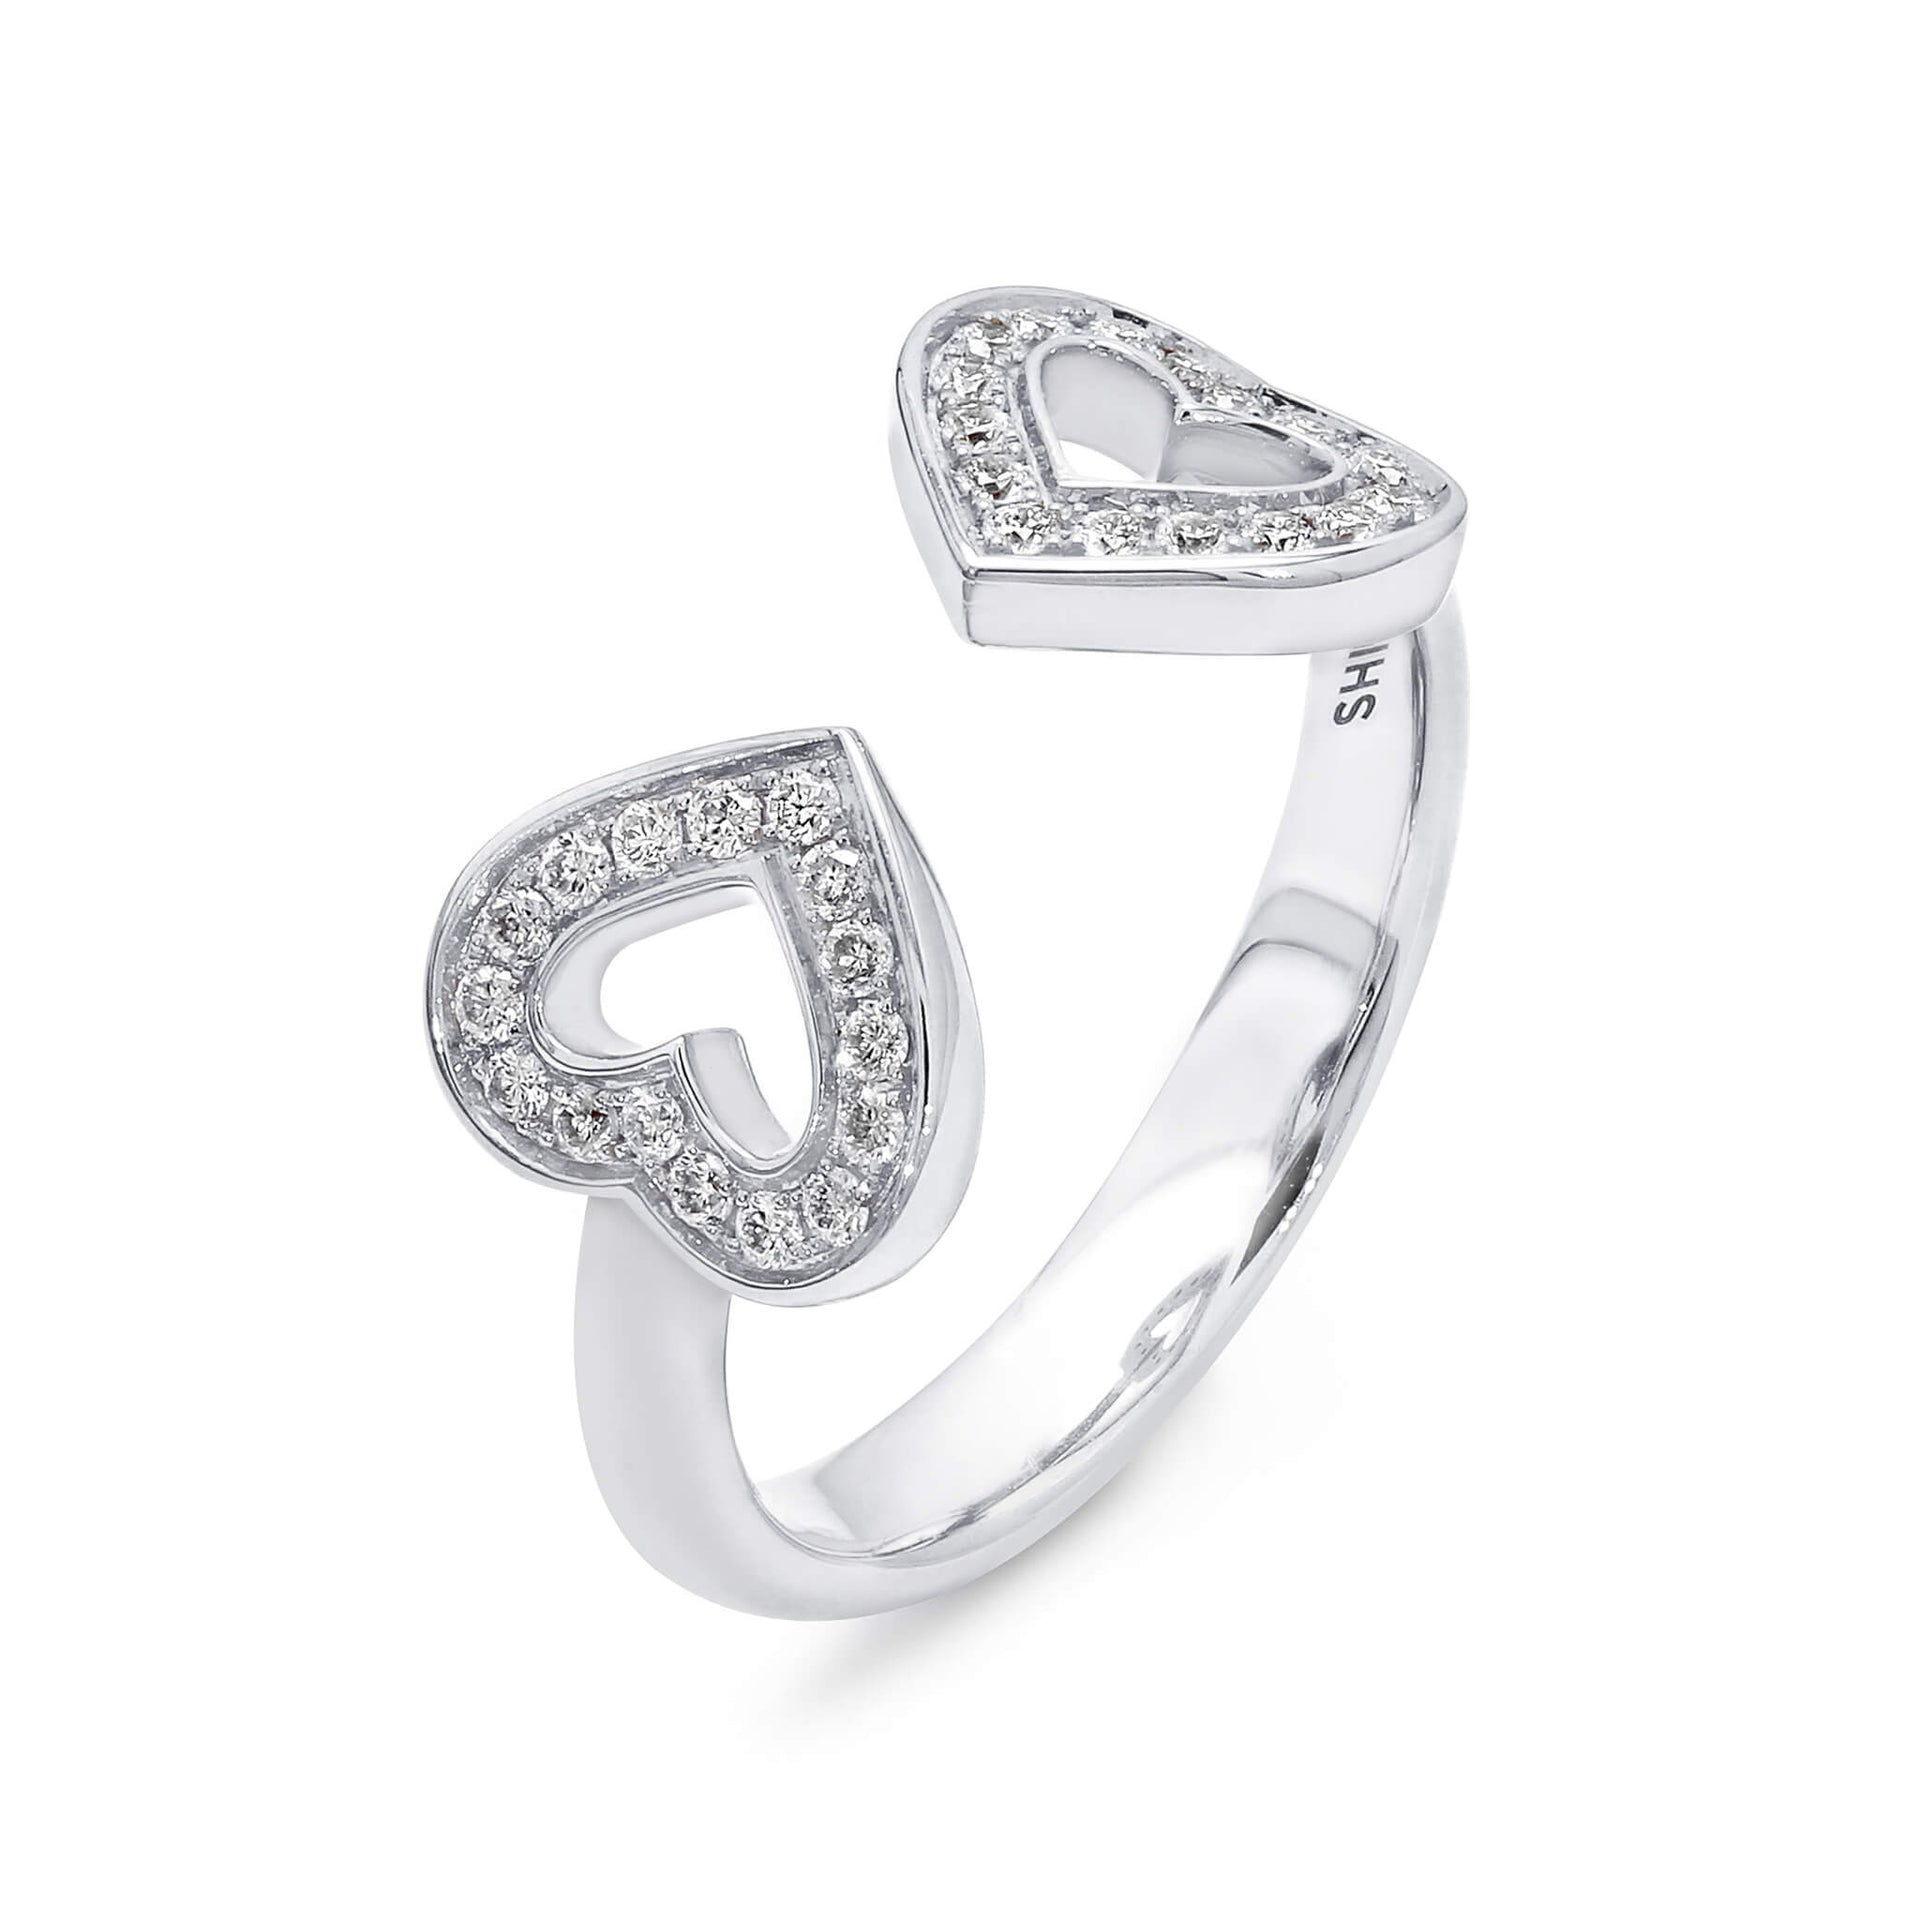 Two Hearts Diamond Ring in 18K White Gold 3D View